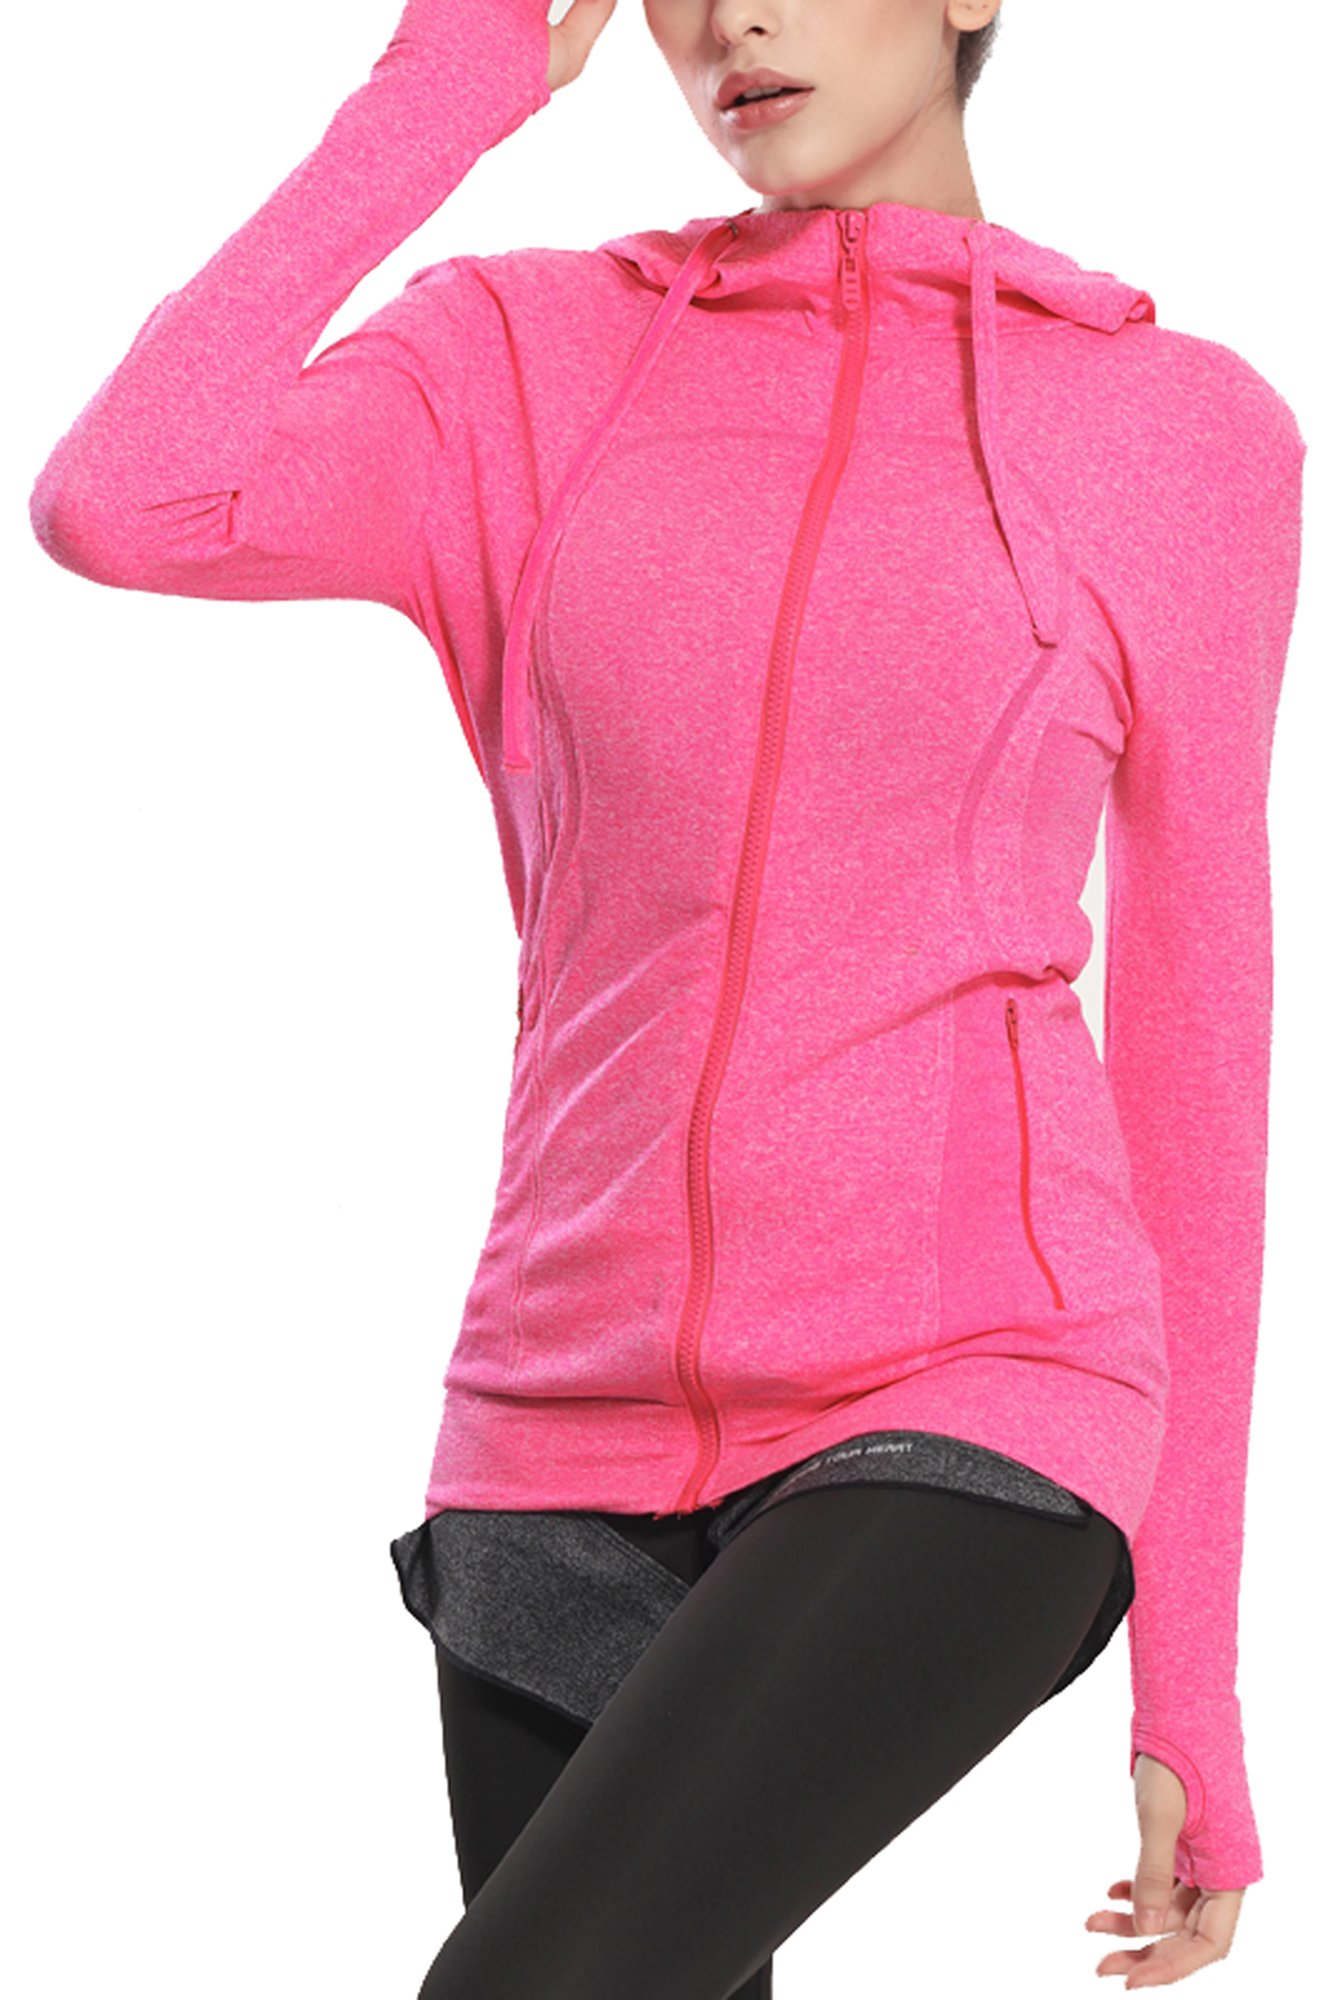 HIYAGO Girls'and Teenagers' Activewear Slim Hoodie with Thumb Hole(Fit for:70-100lbs)